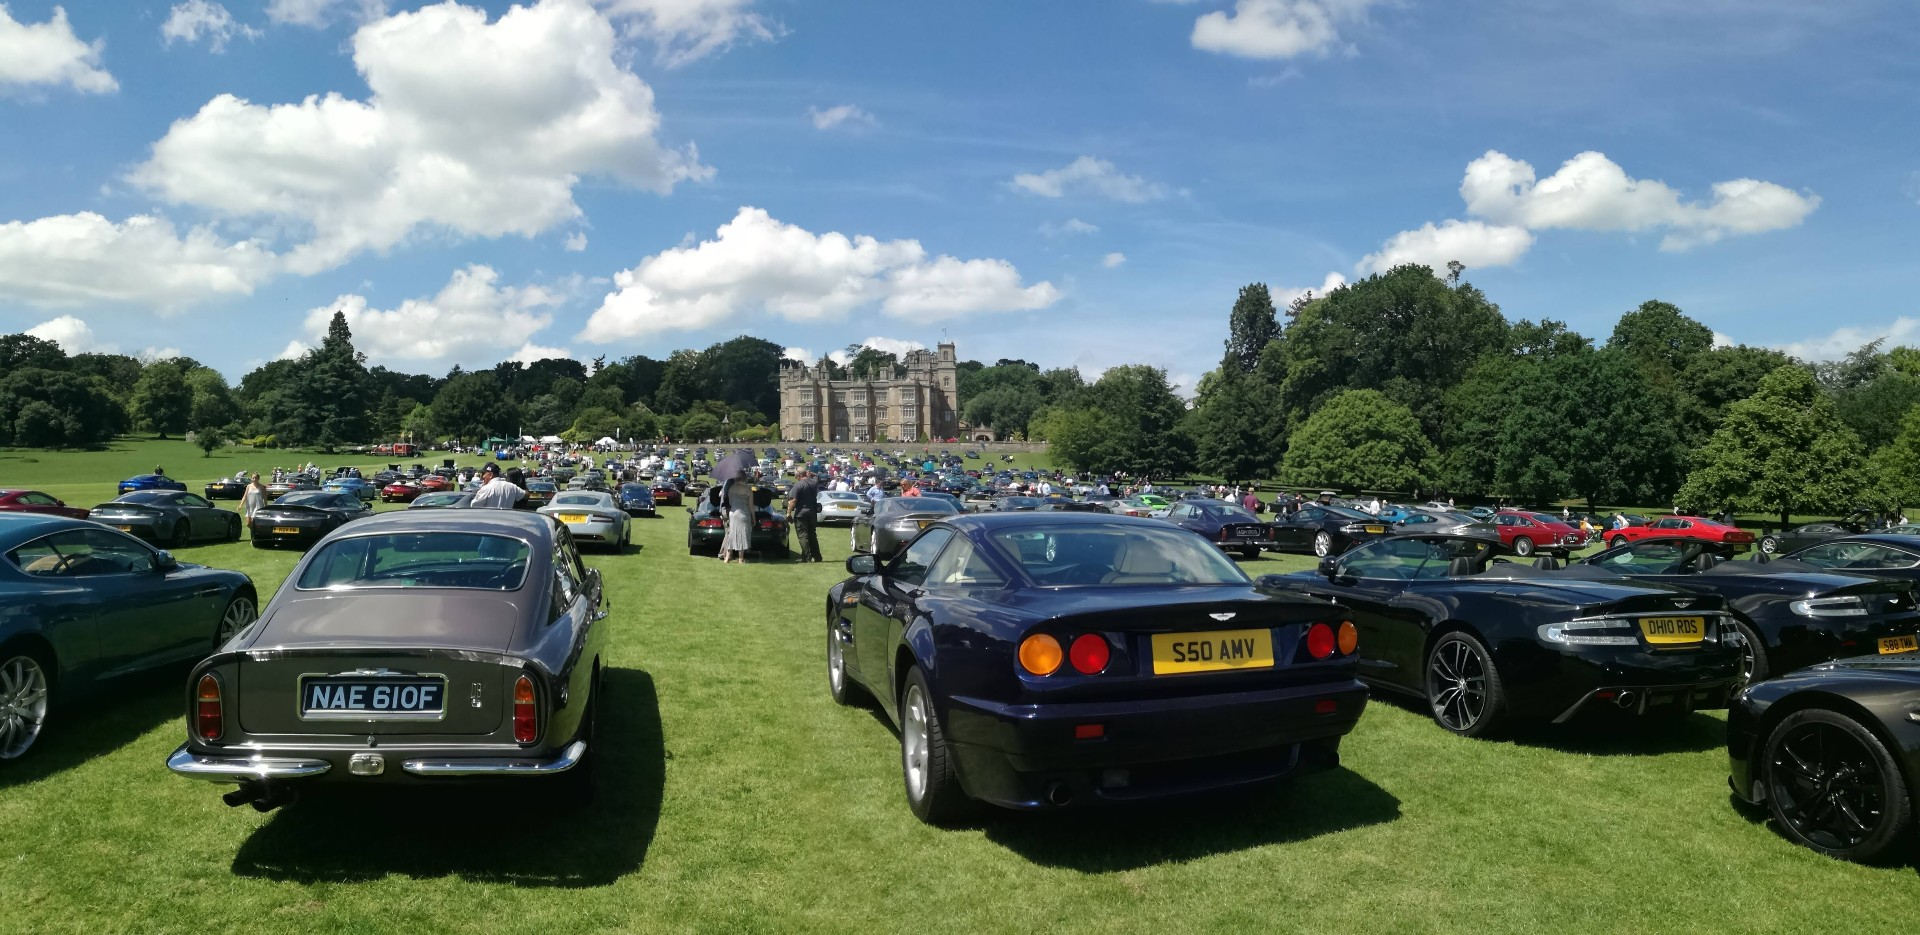 180603_Englefield Concours_Field of Astons_Tania Reed__130318.jpg